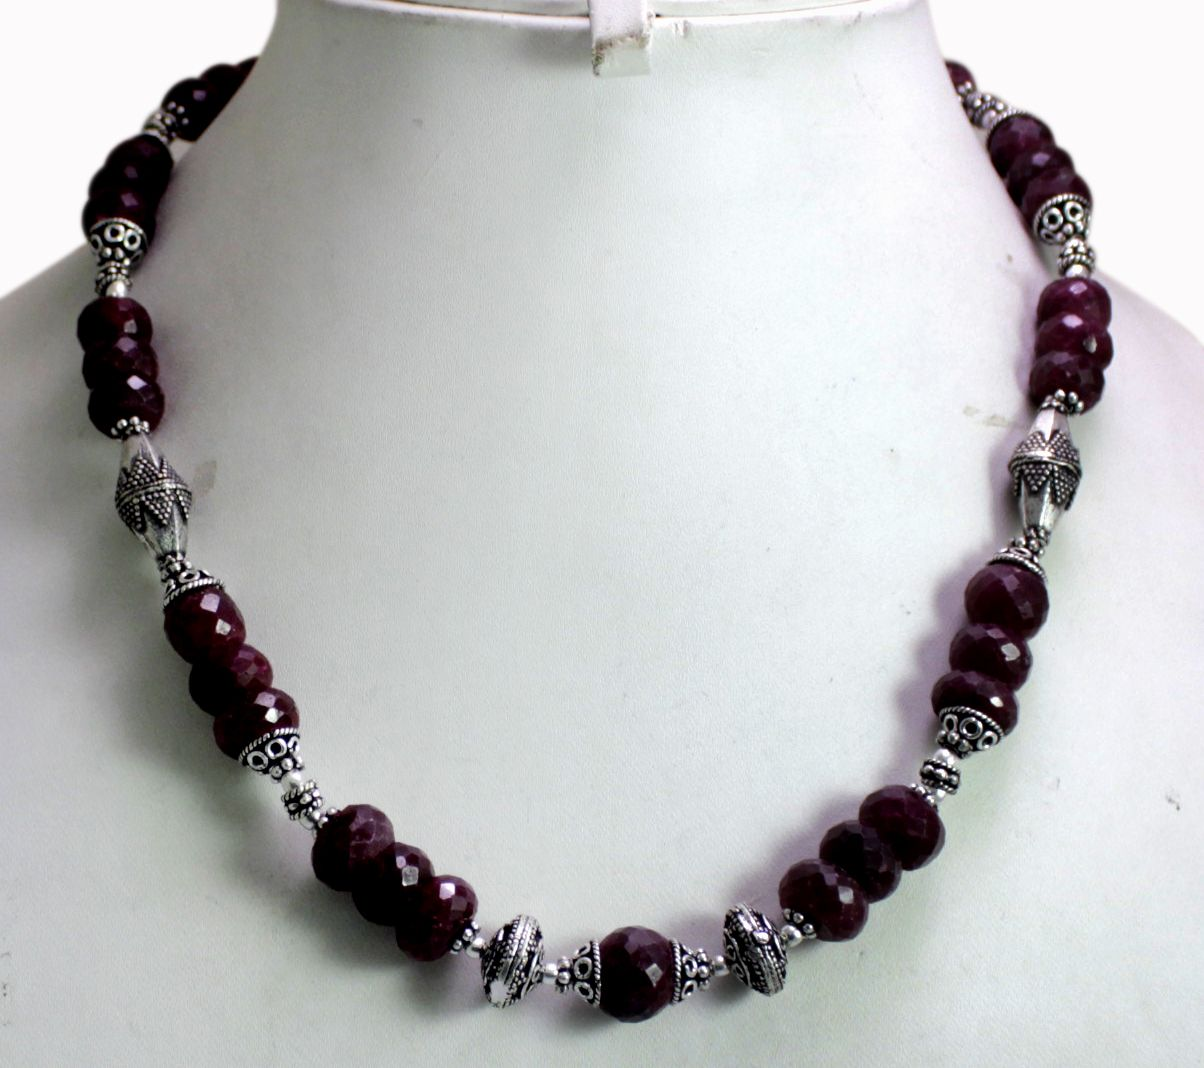 (SKU No. 464ct) 505ct Natural Blood Red Ruby Designer Beads Necklace Faceted with Silver Beads